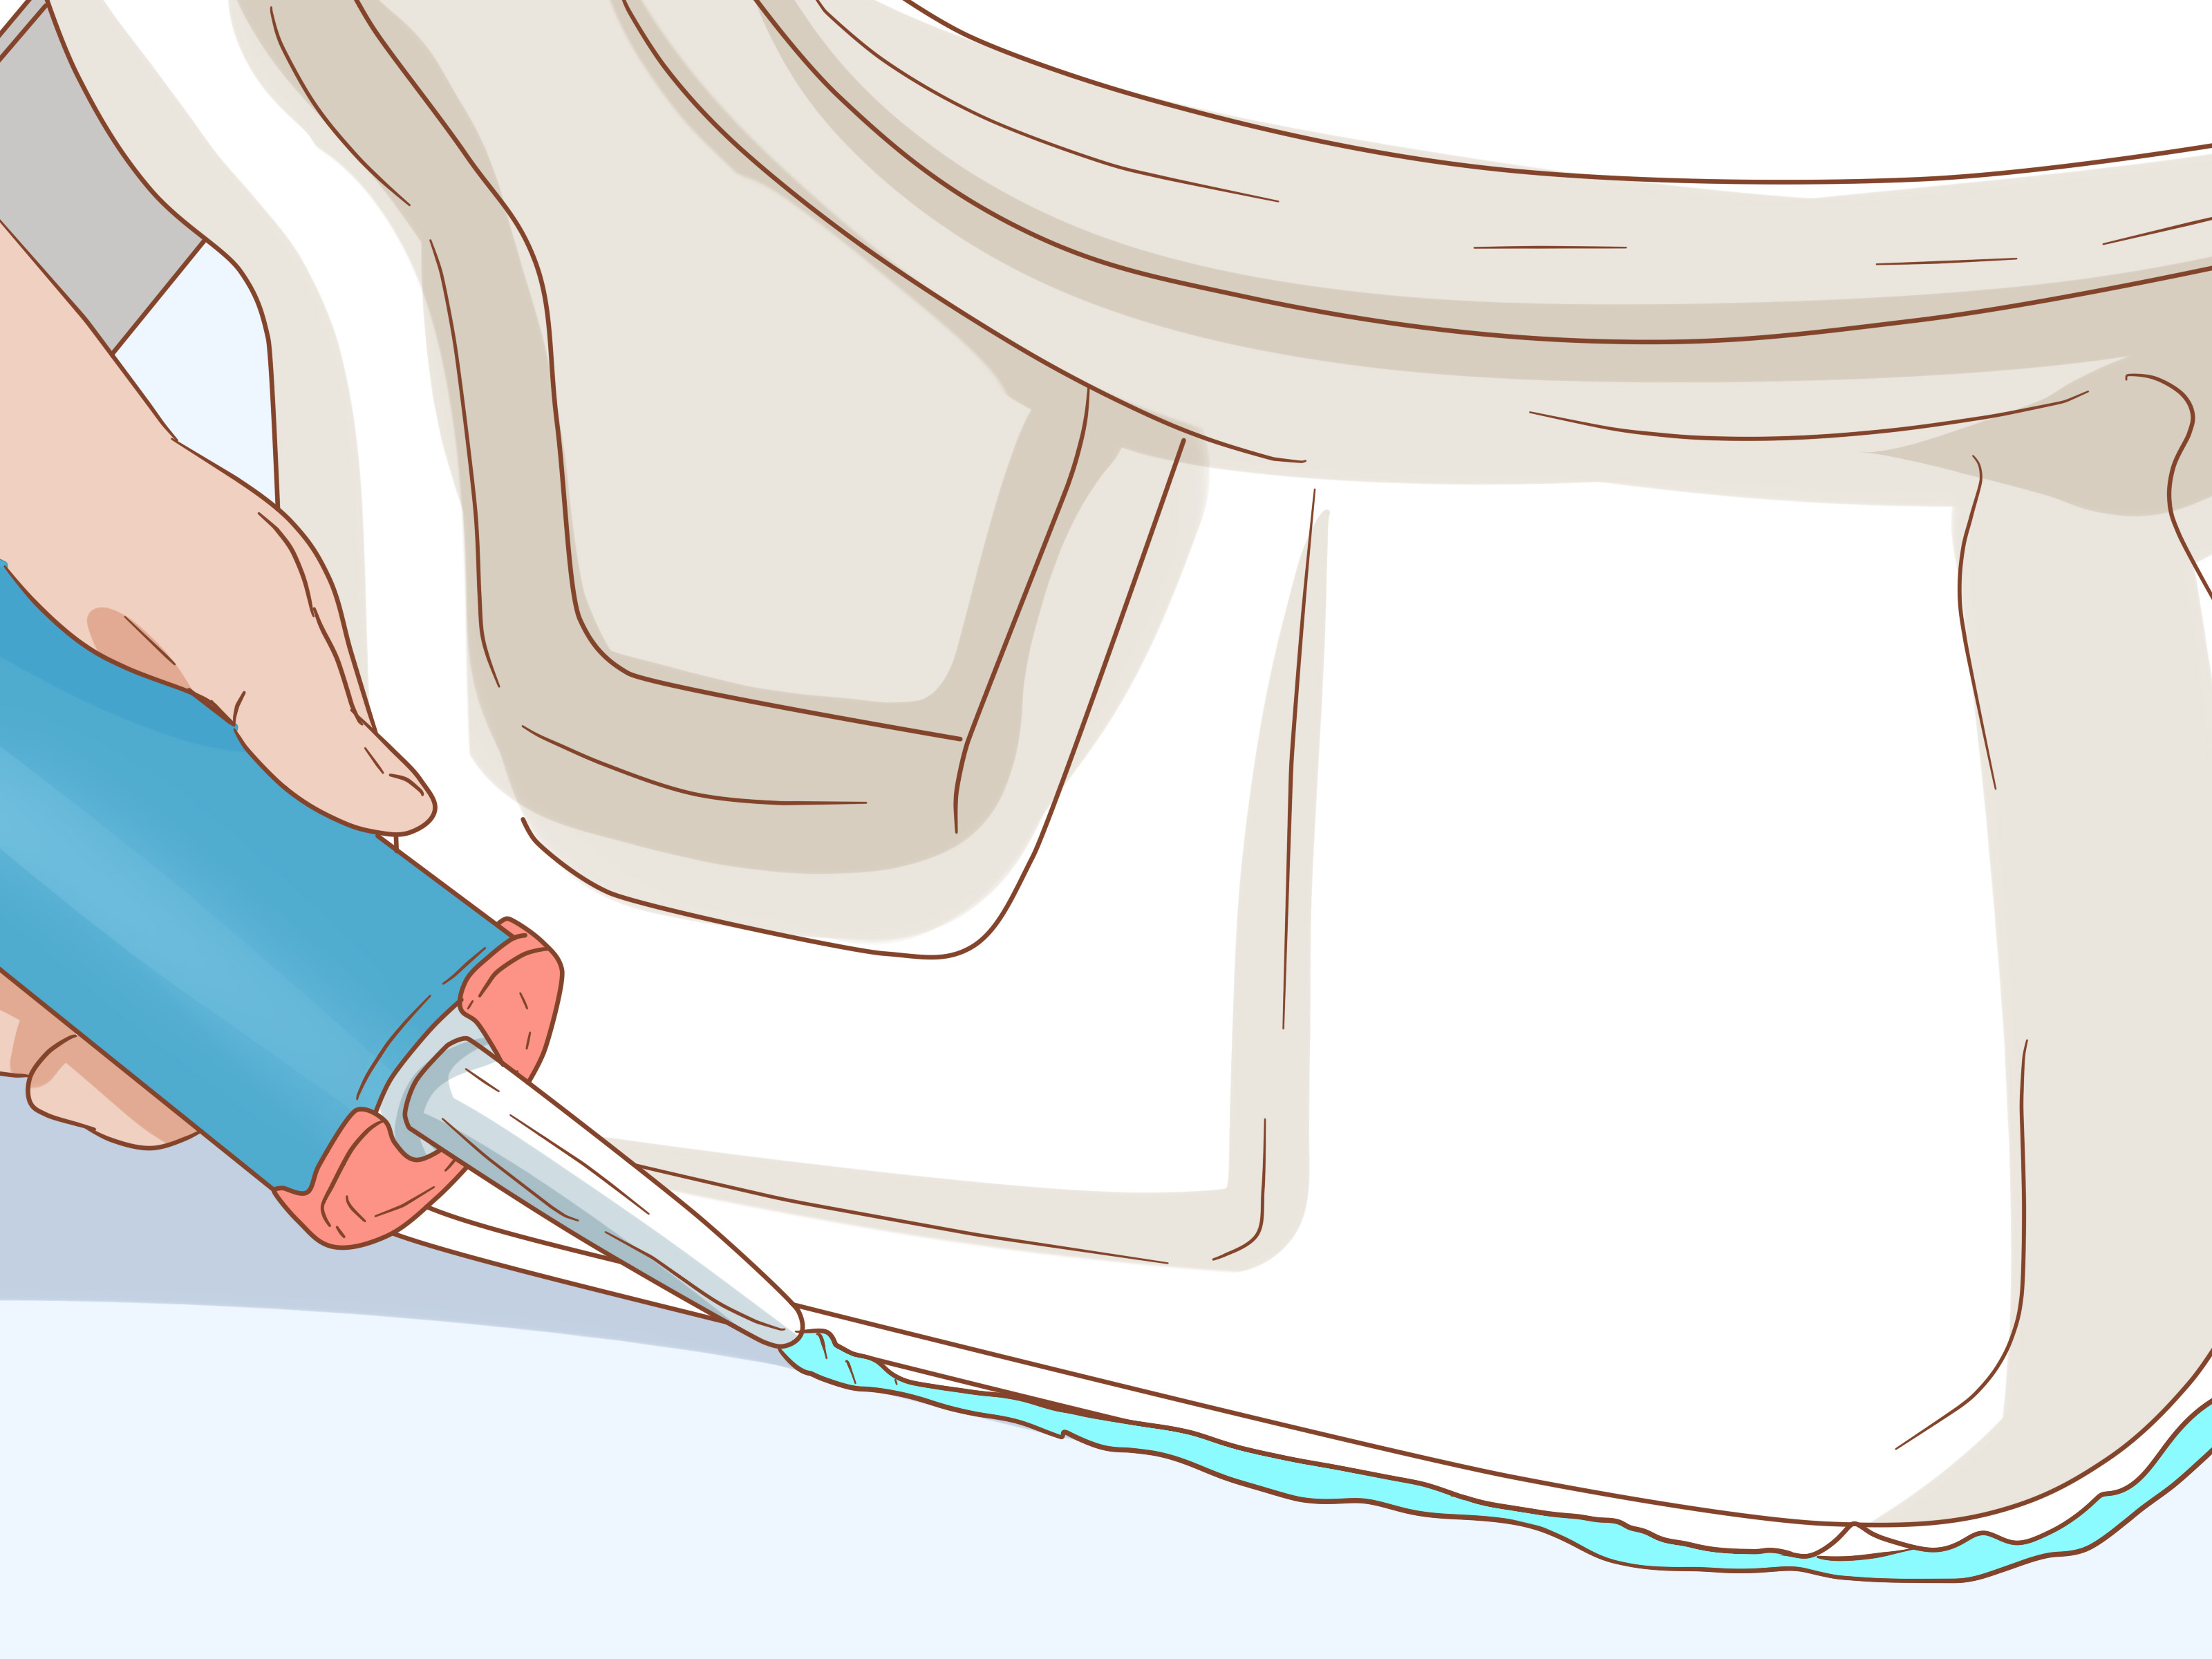 Install A Toilet How To Install A Toilet With Pictures Wikihow